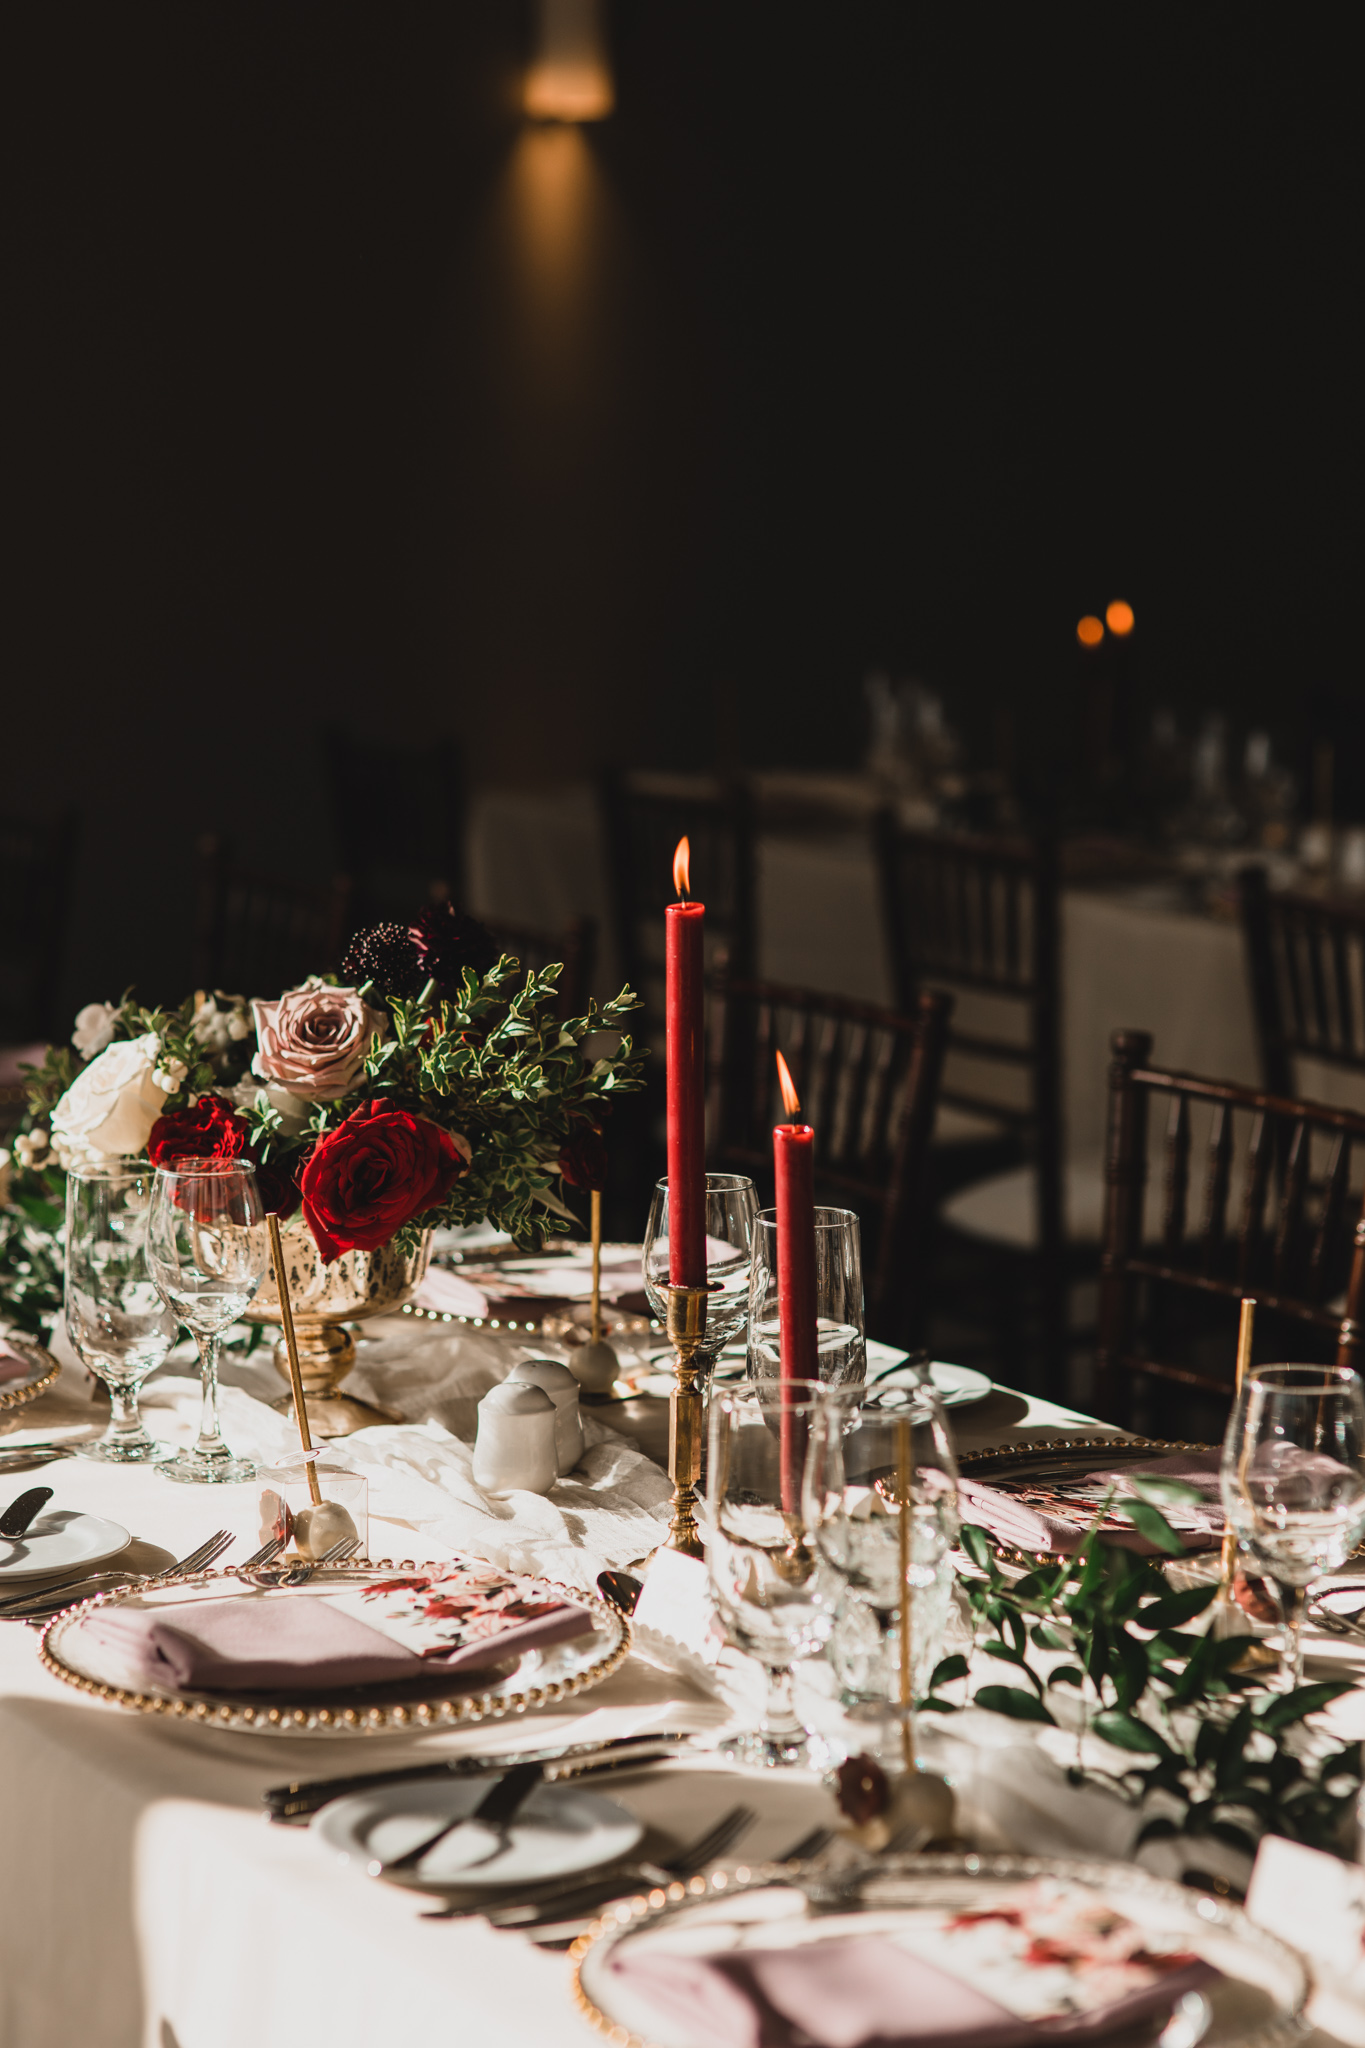 Moody, romantic Ottawa wedding